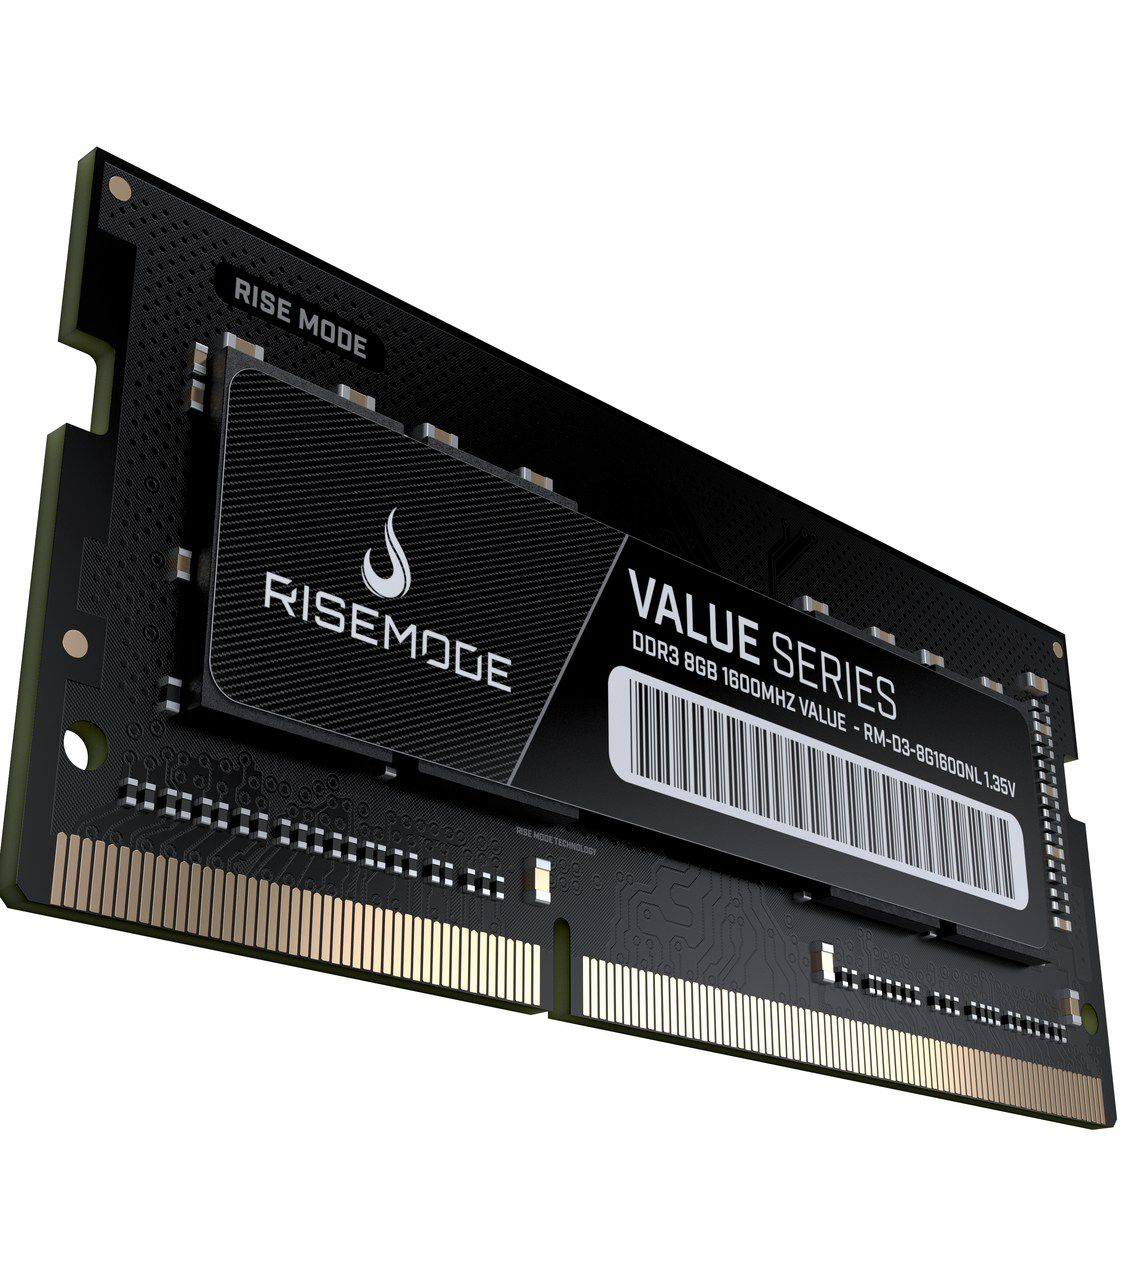 Memoria Ram DDR3L 8GB 1600MHZ Value Notebook - RM-D3-8G1600NL